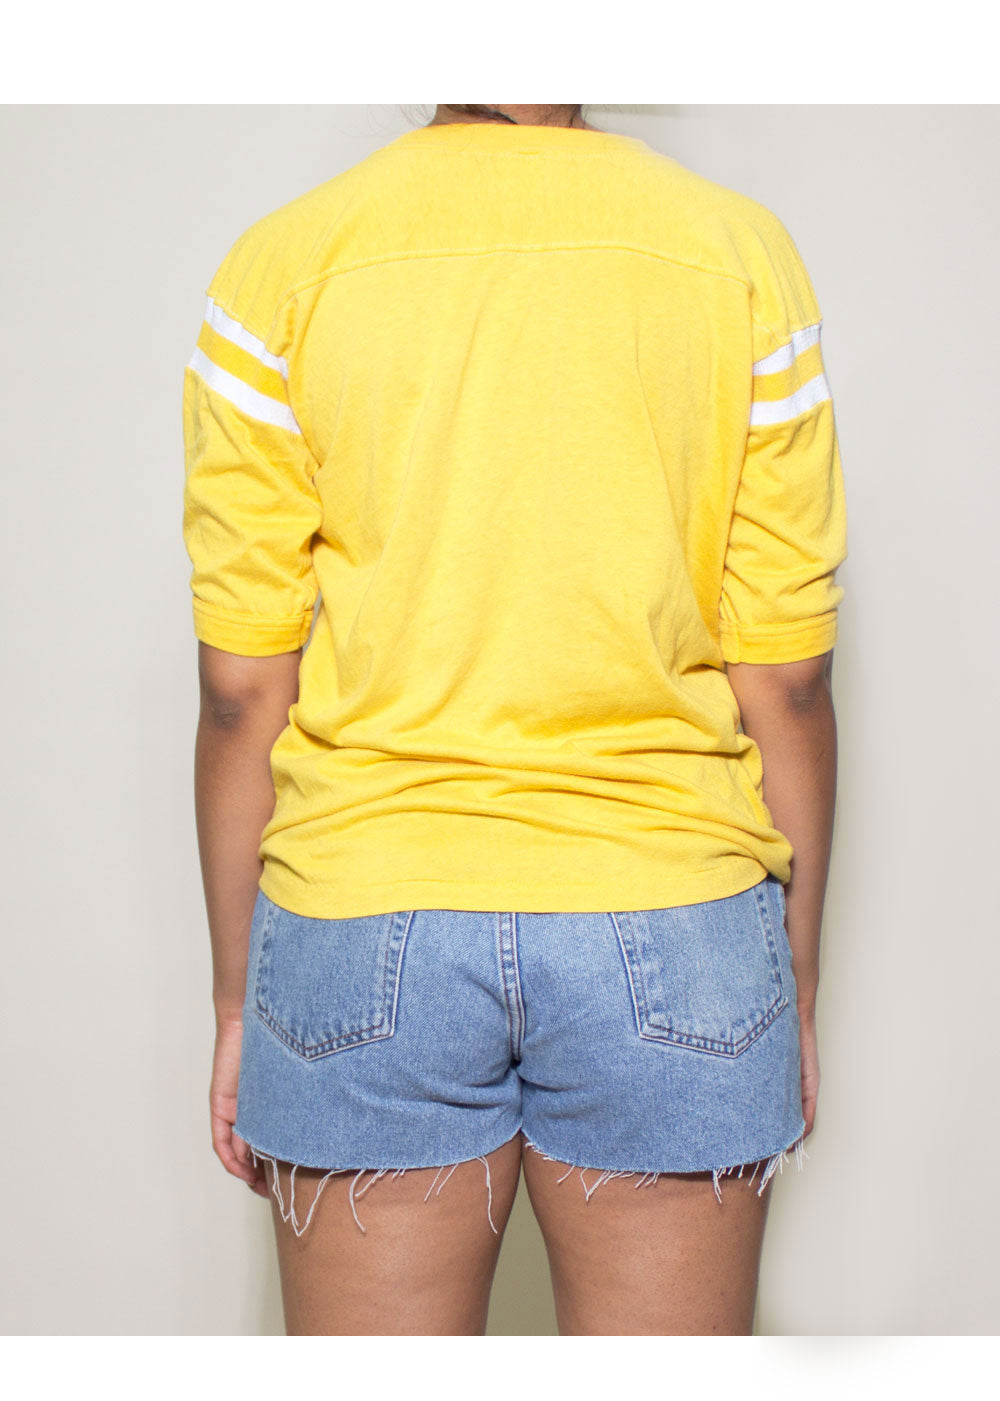 Yellow Graphic Tee